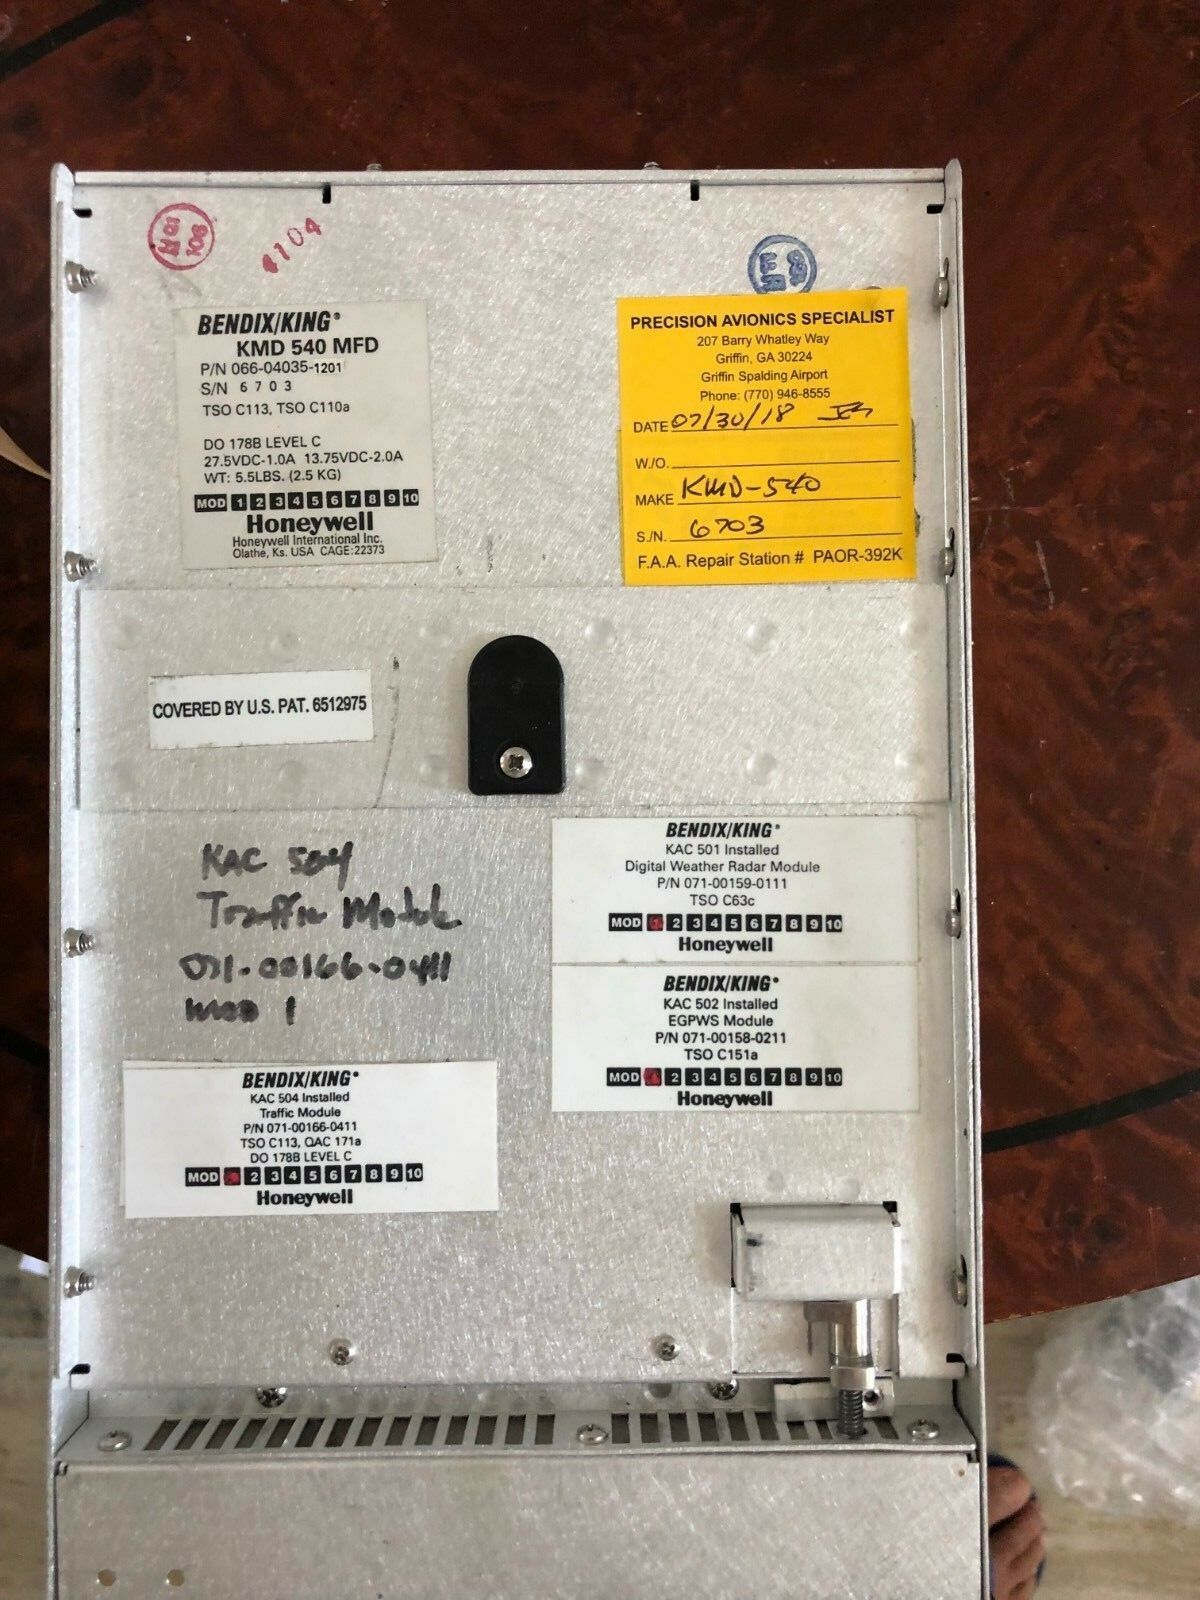 BENDIX/KING KMD-540 P/N 066-04035-0201 WITH KAC 501,502,503,504 MODULE FAA 8130